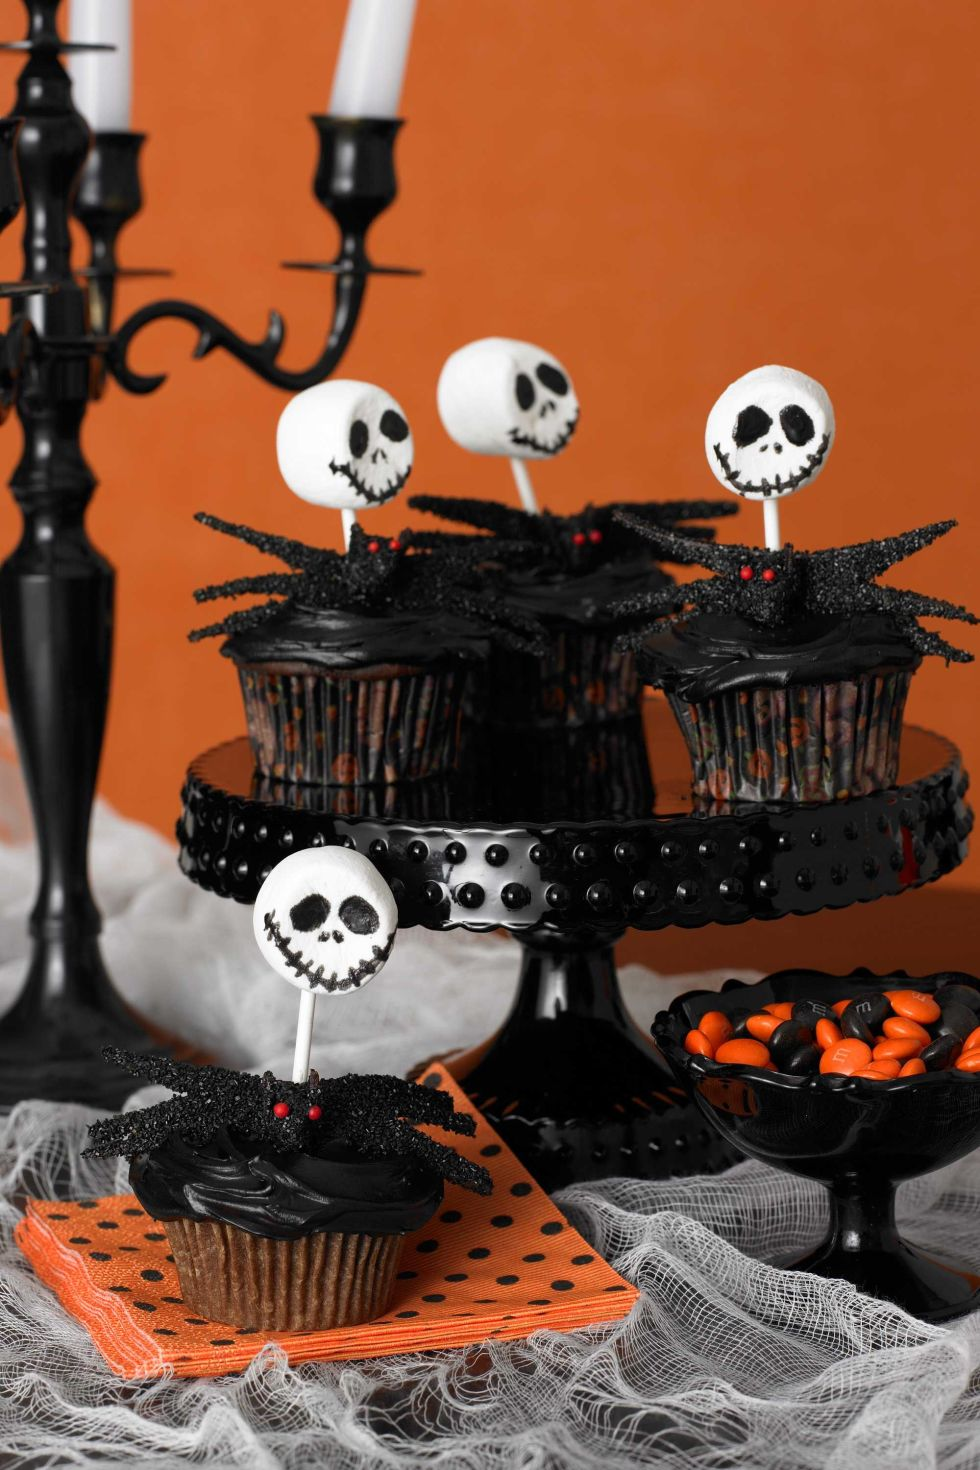 35 halloween cupcake ideas recipes for cute and scary halloween desserts - Halloween Decorations Cupcakes